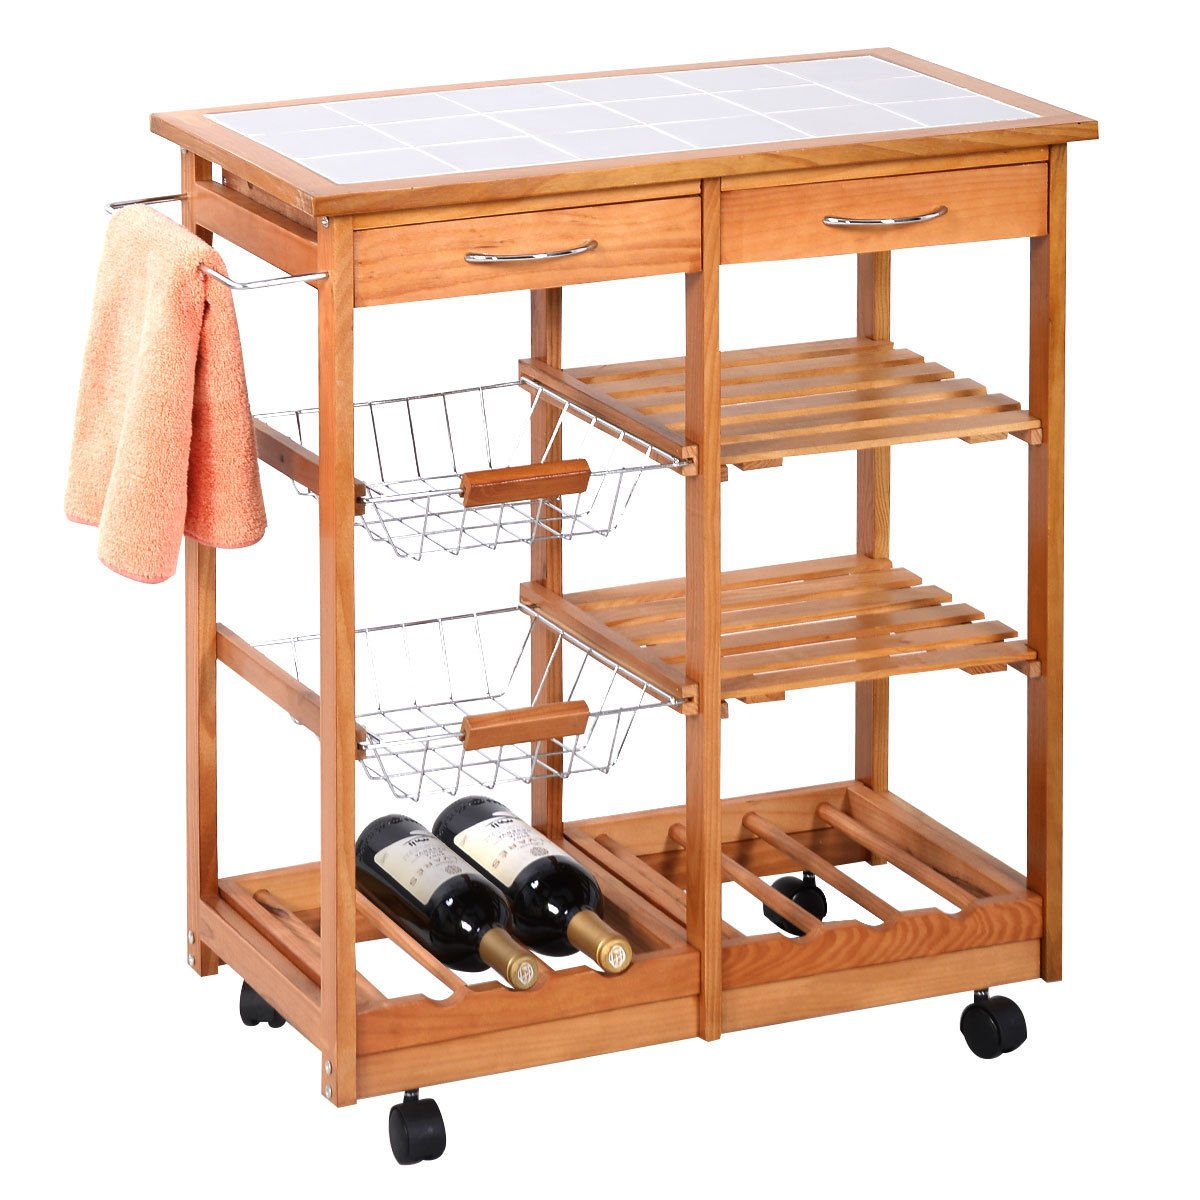 Delicieux Amazon.com   Rolling Wood Kitchen Trolley Cart Countertop Dining Storage  Drawers Stand New   Kitchen Islands U0026 Carts